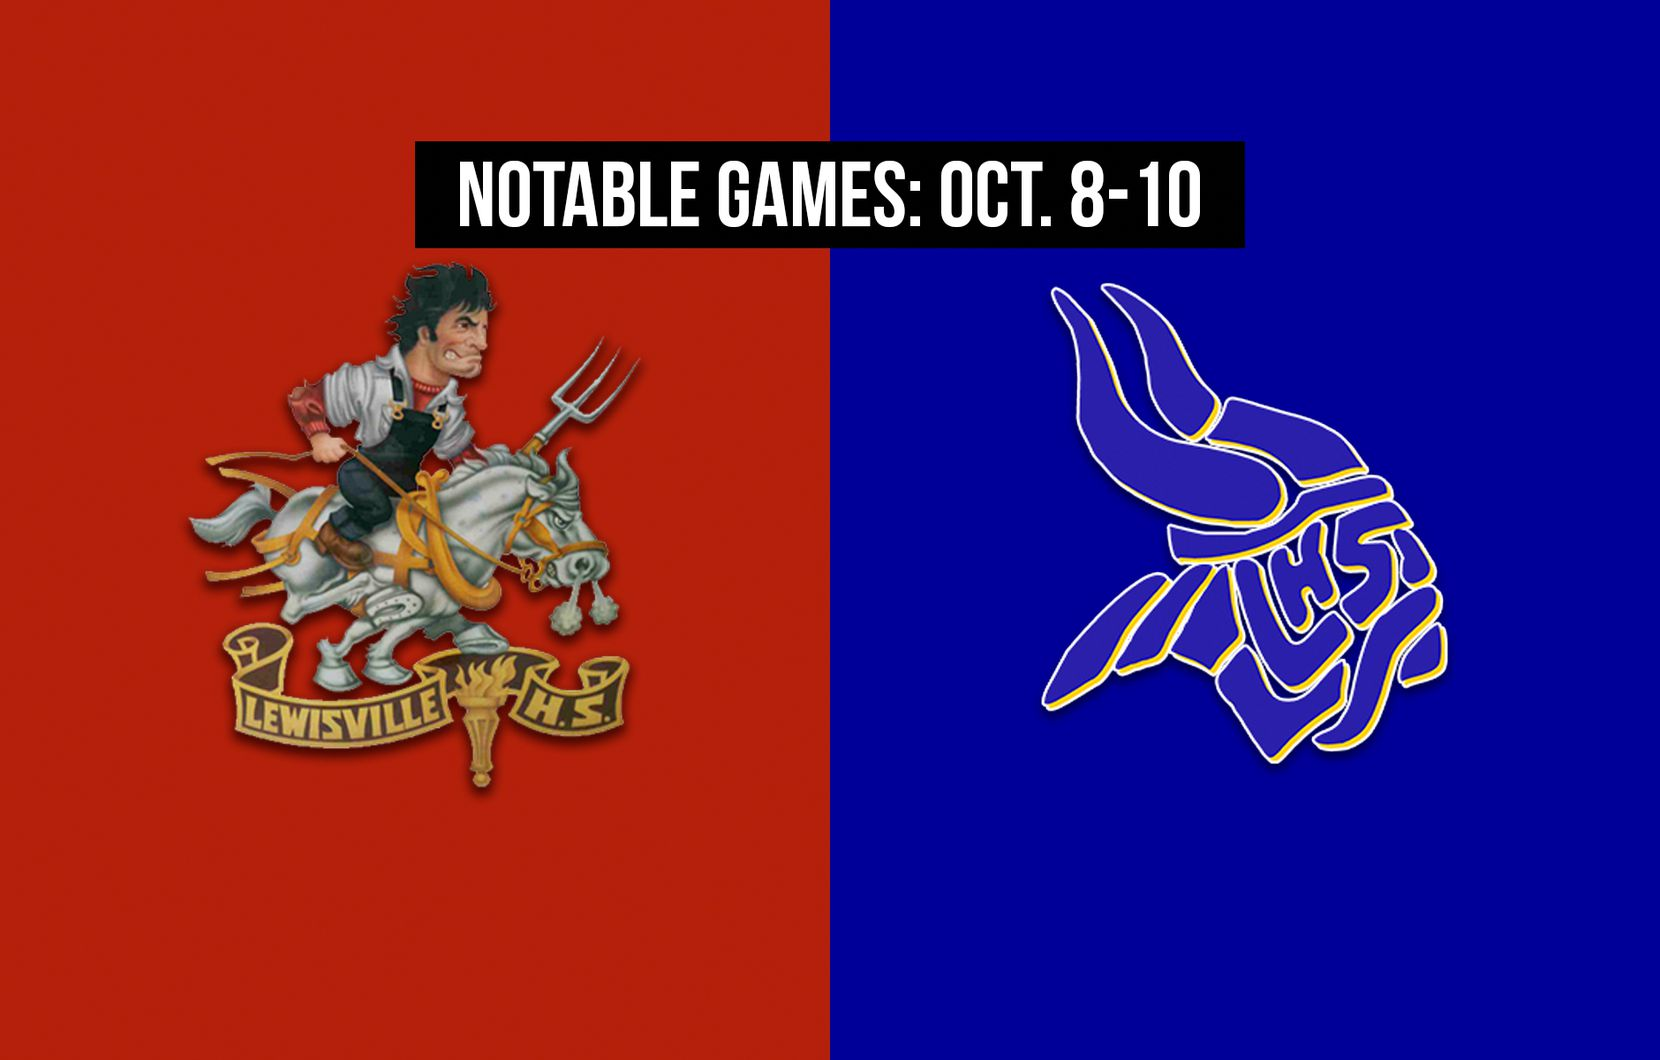 Notable games for the week of Oct. 8-10 of the 2020 season: Lewisville vs. Arlington Lamar.